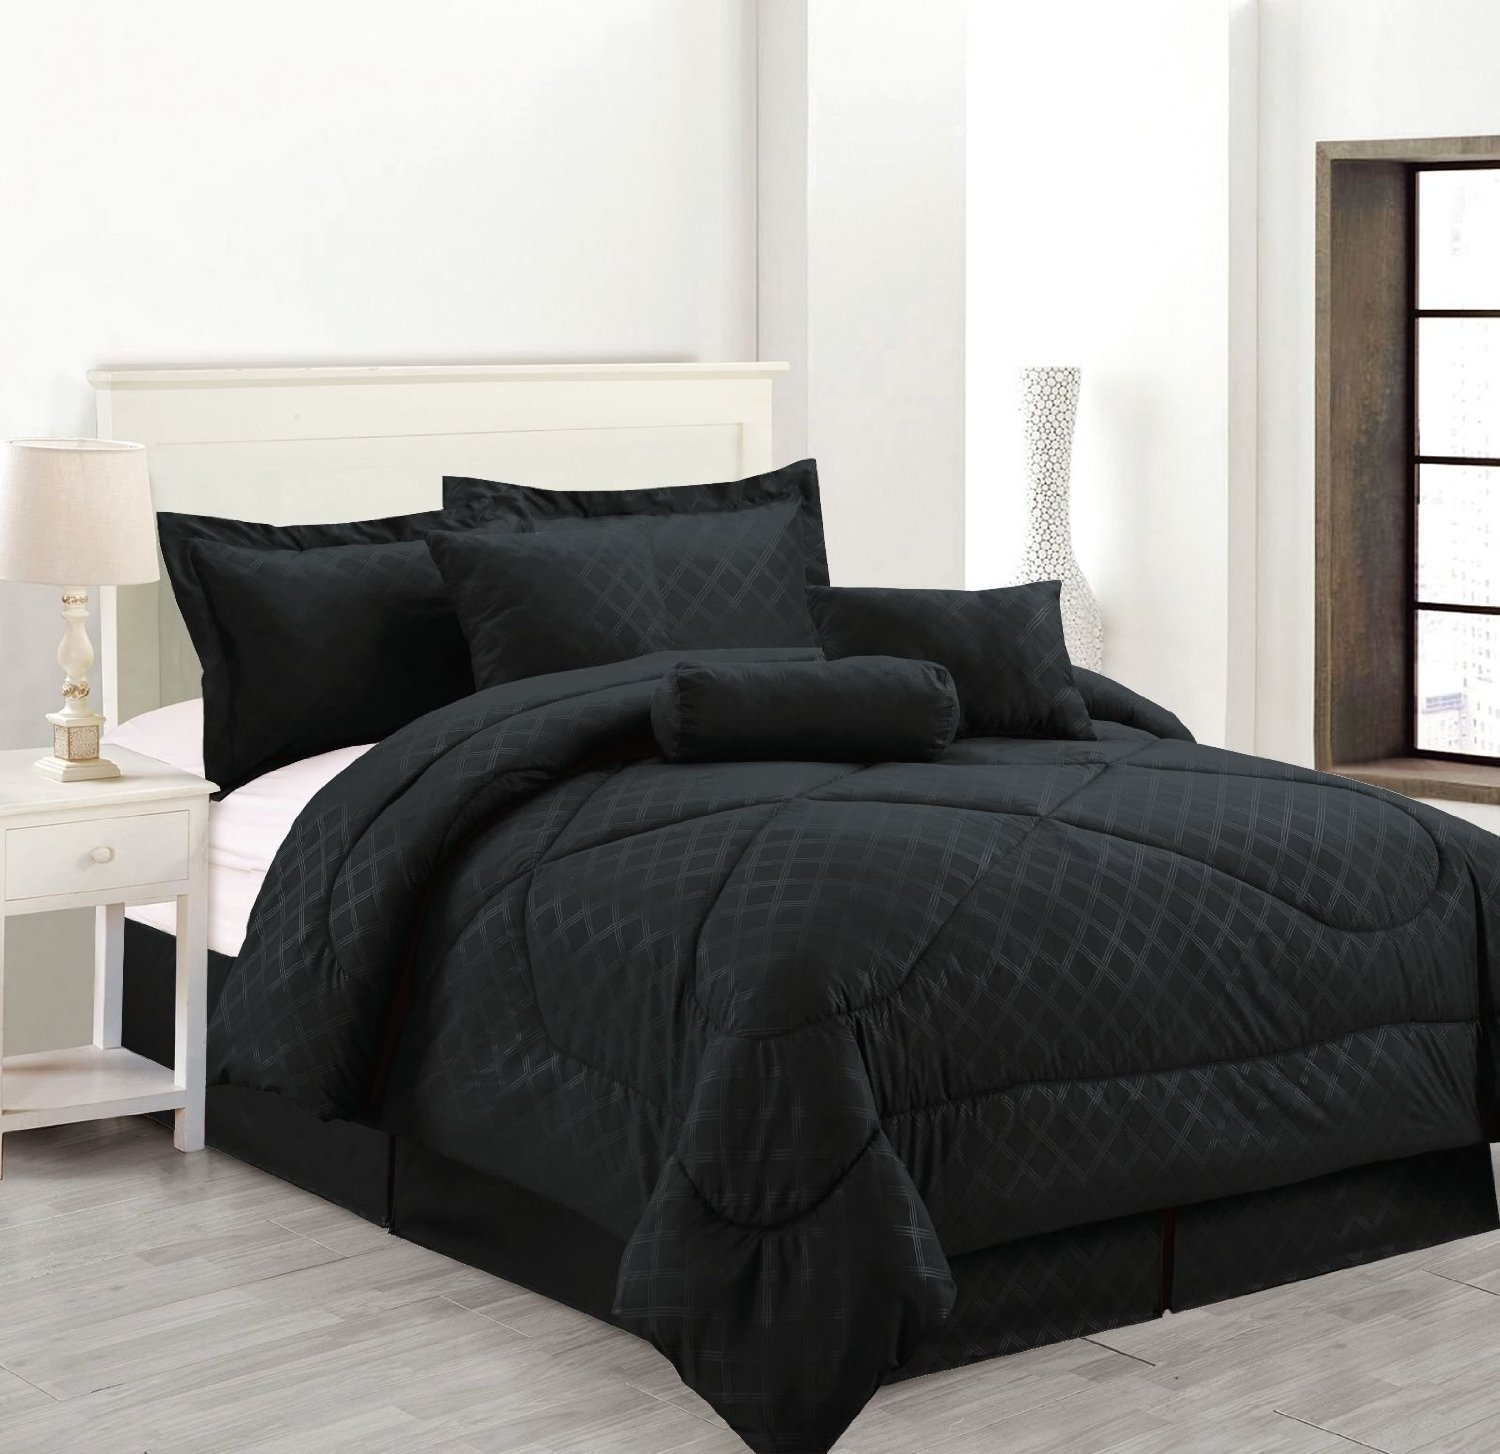 Amazon.com: Luxury Hotel 7-Pc Embossed Solid Comforter Set (Queen Size, Black): Bedding & Bath